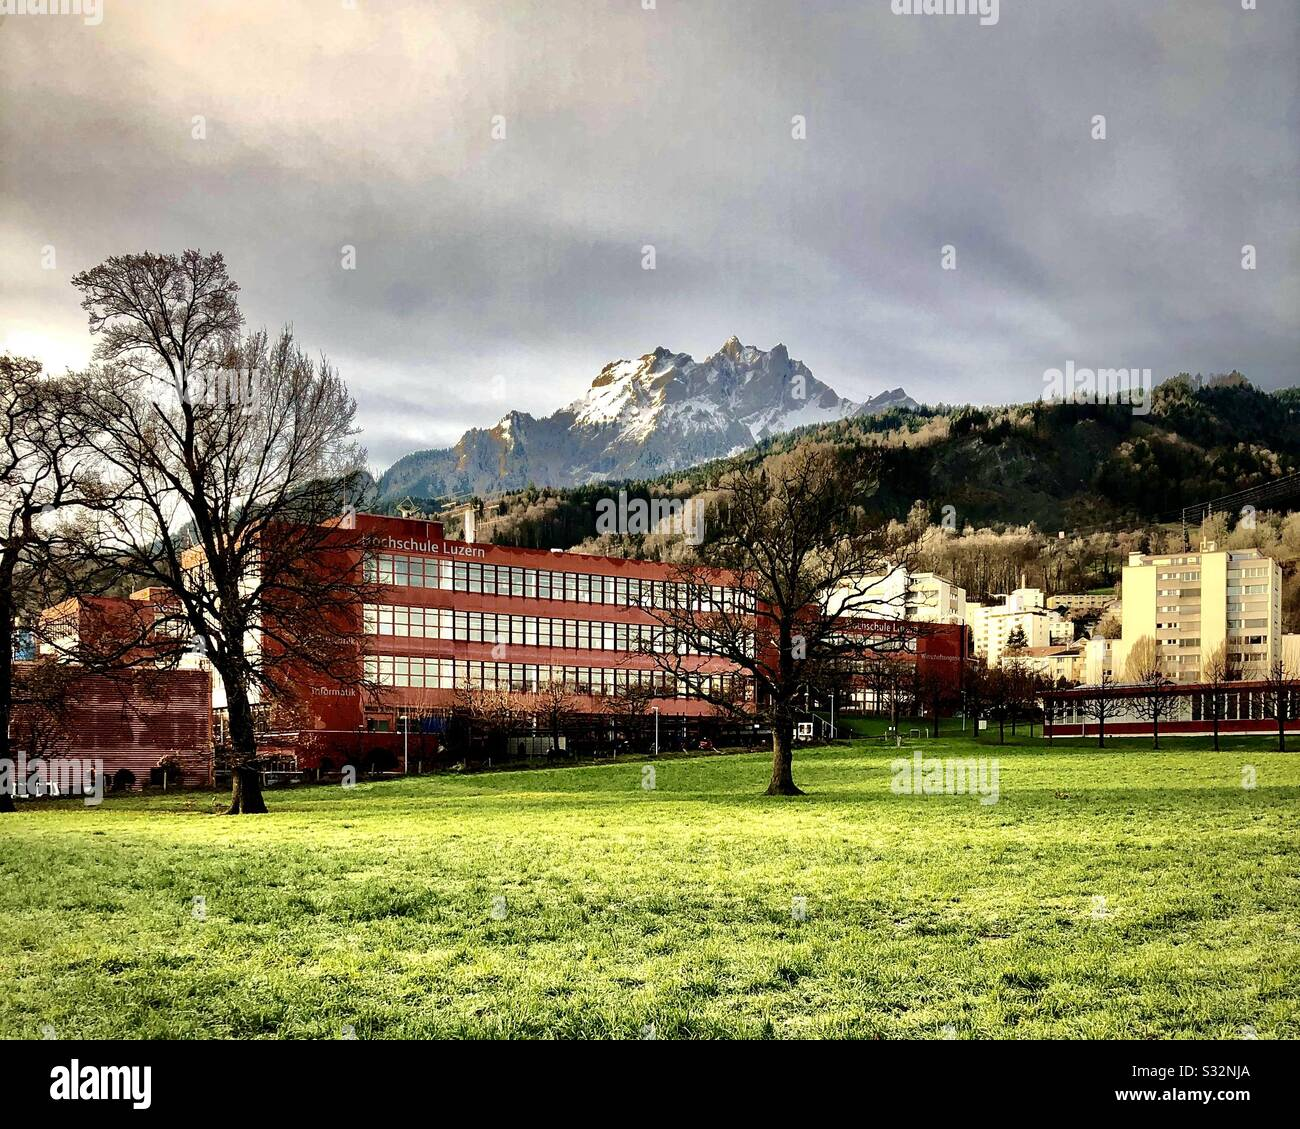 Lucerne University Of Applied Sciences And Arts Hslu Luzern University Campus In Switzerland Stock Photo Alamy